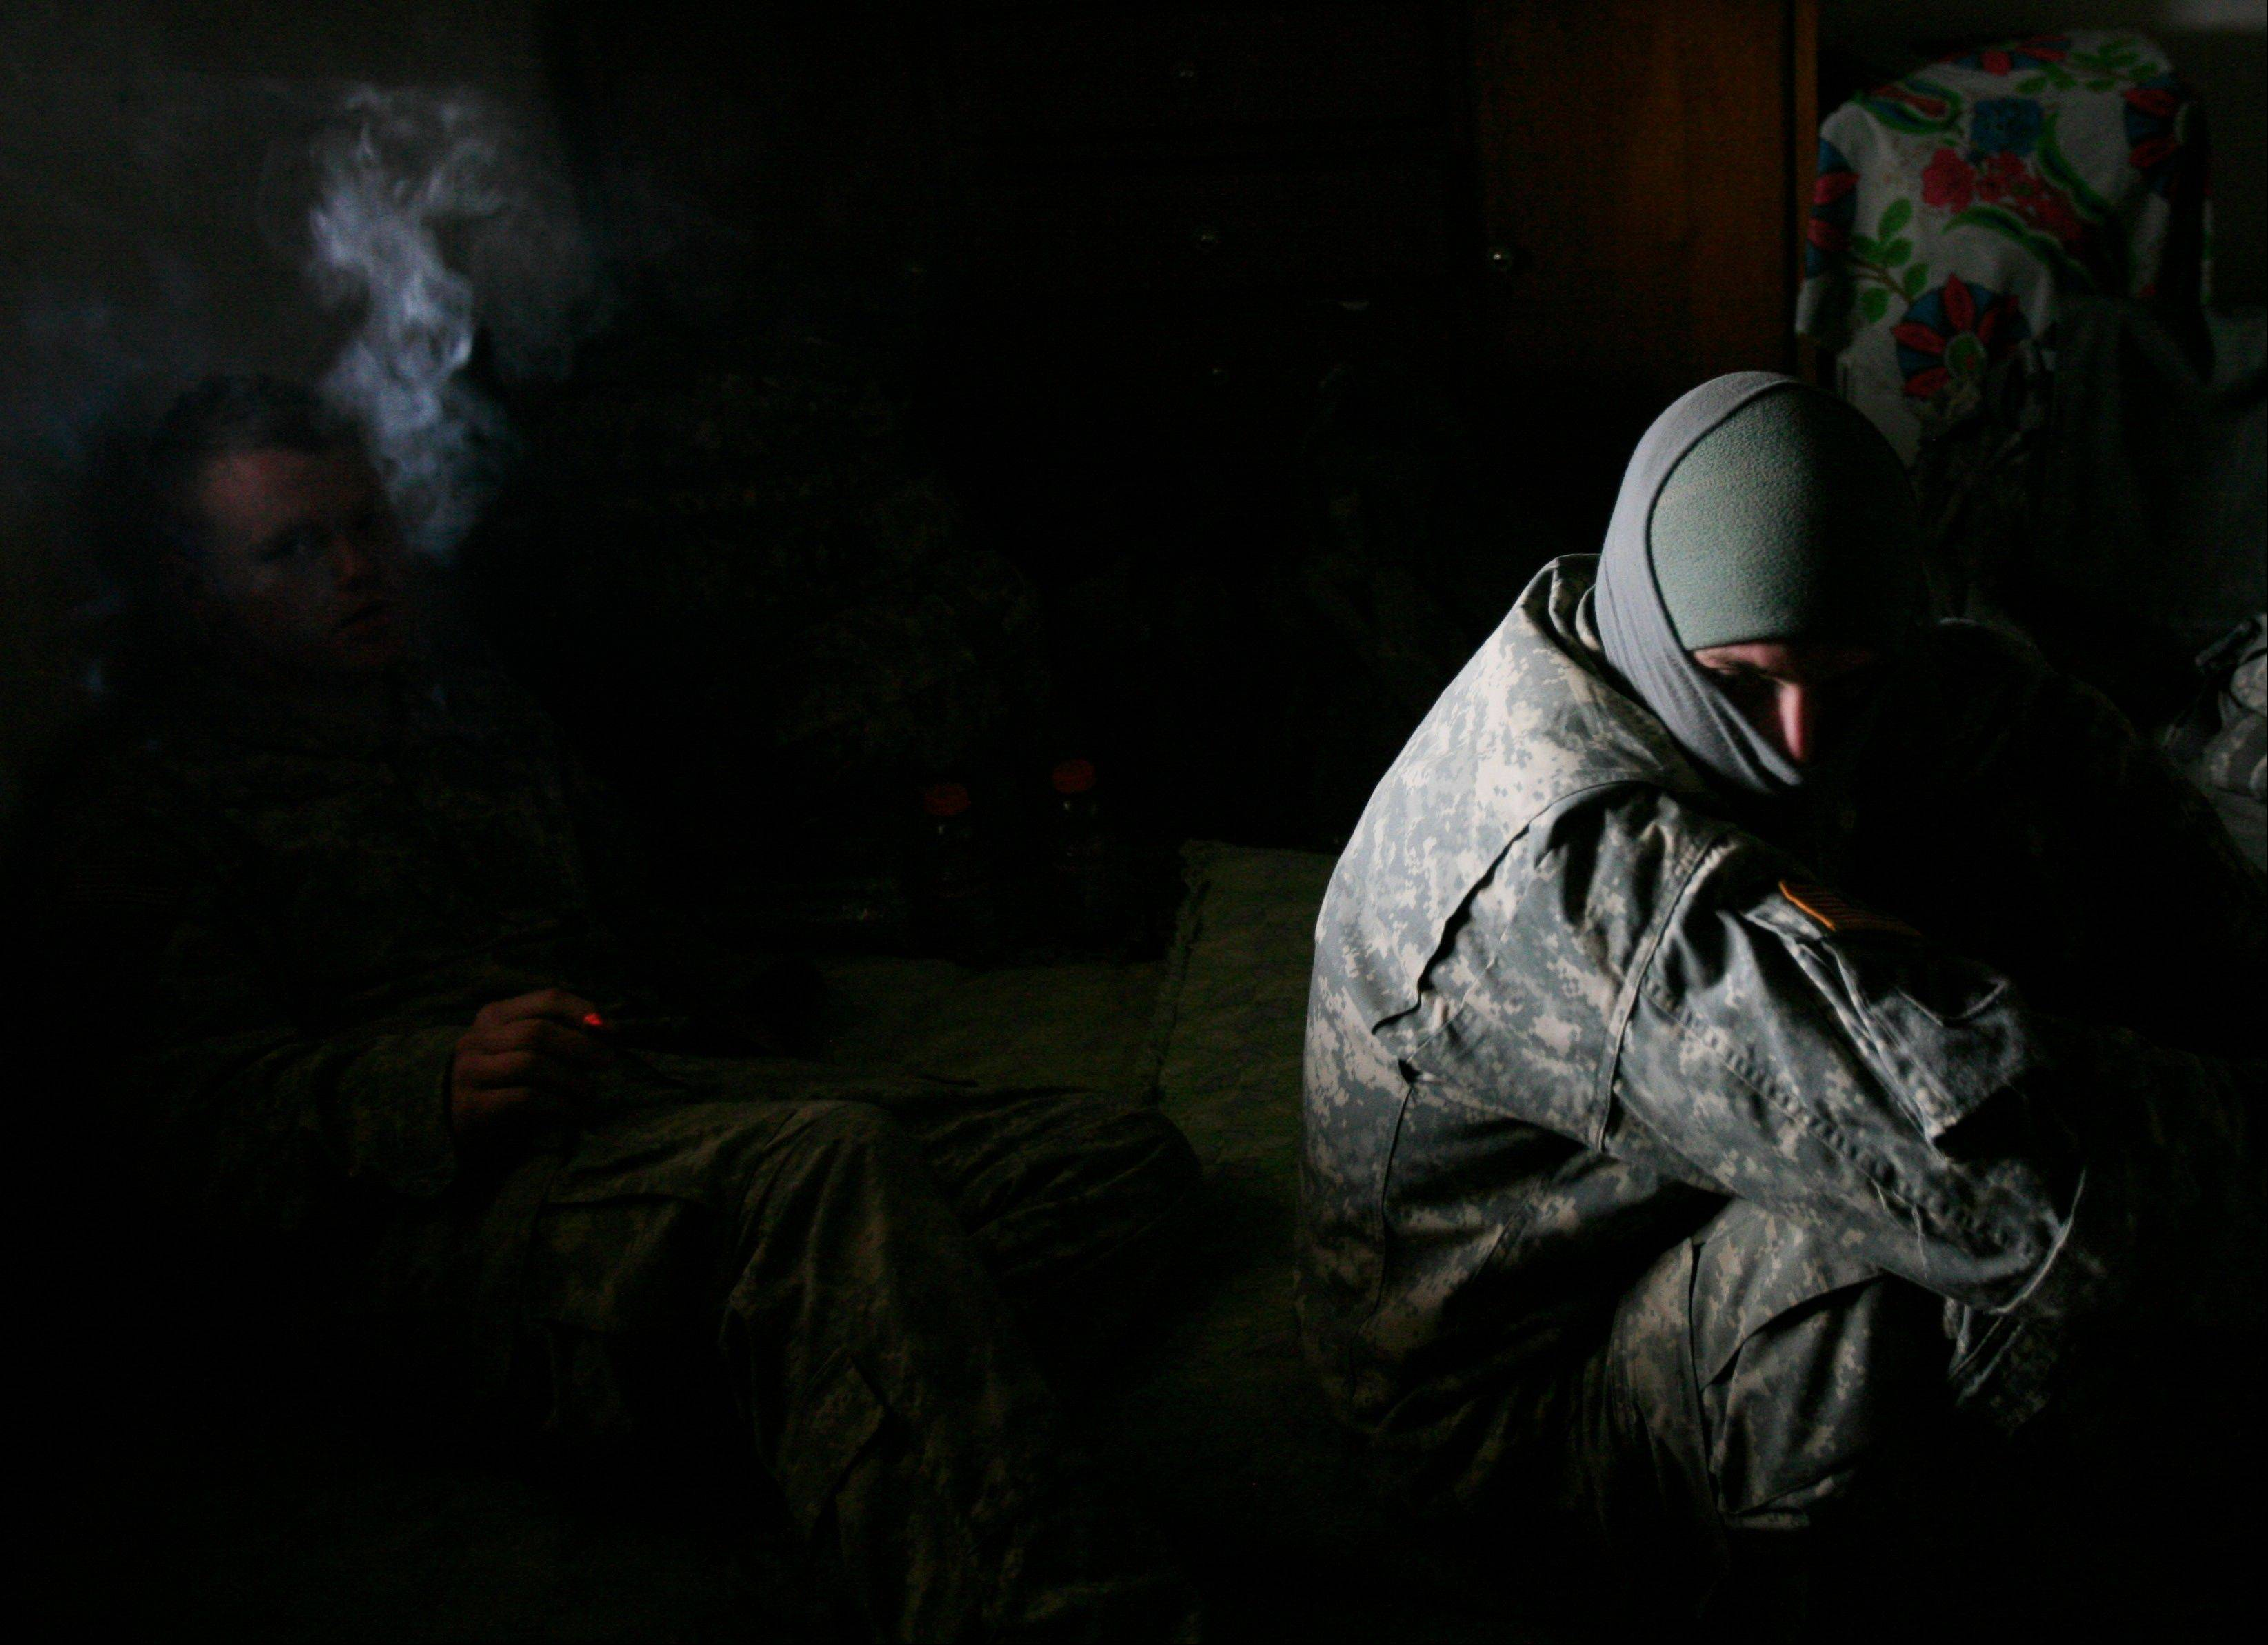 U.S. Army Pfc. Matthew Fazio, right, 25, bundles up against the bitter cold as soldiers from Alpha Company, 1st Battalion, 30th Infantry Regiment occupy a house in Arab Jabour during Operation Coliseum south of Baghdad, Iraq on Wednesday, Jan. 23, 2008.